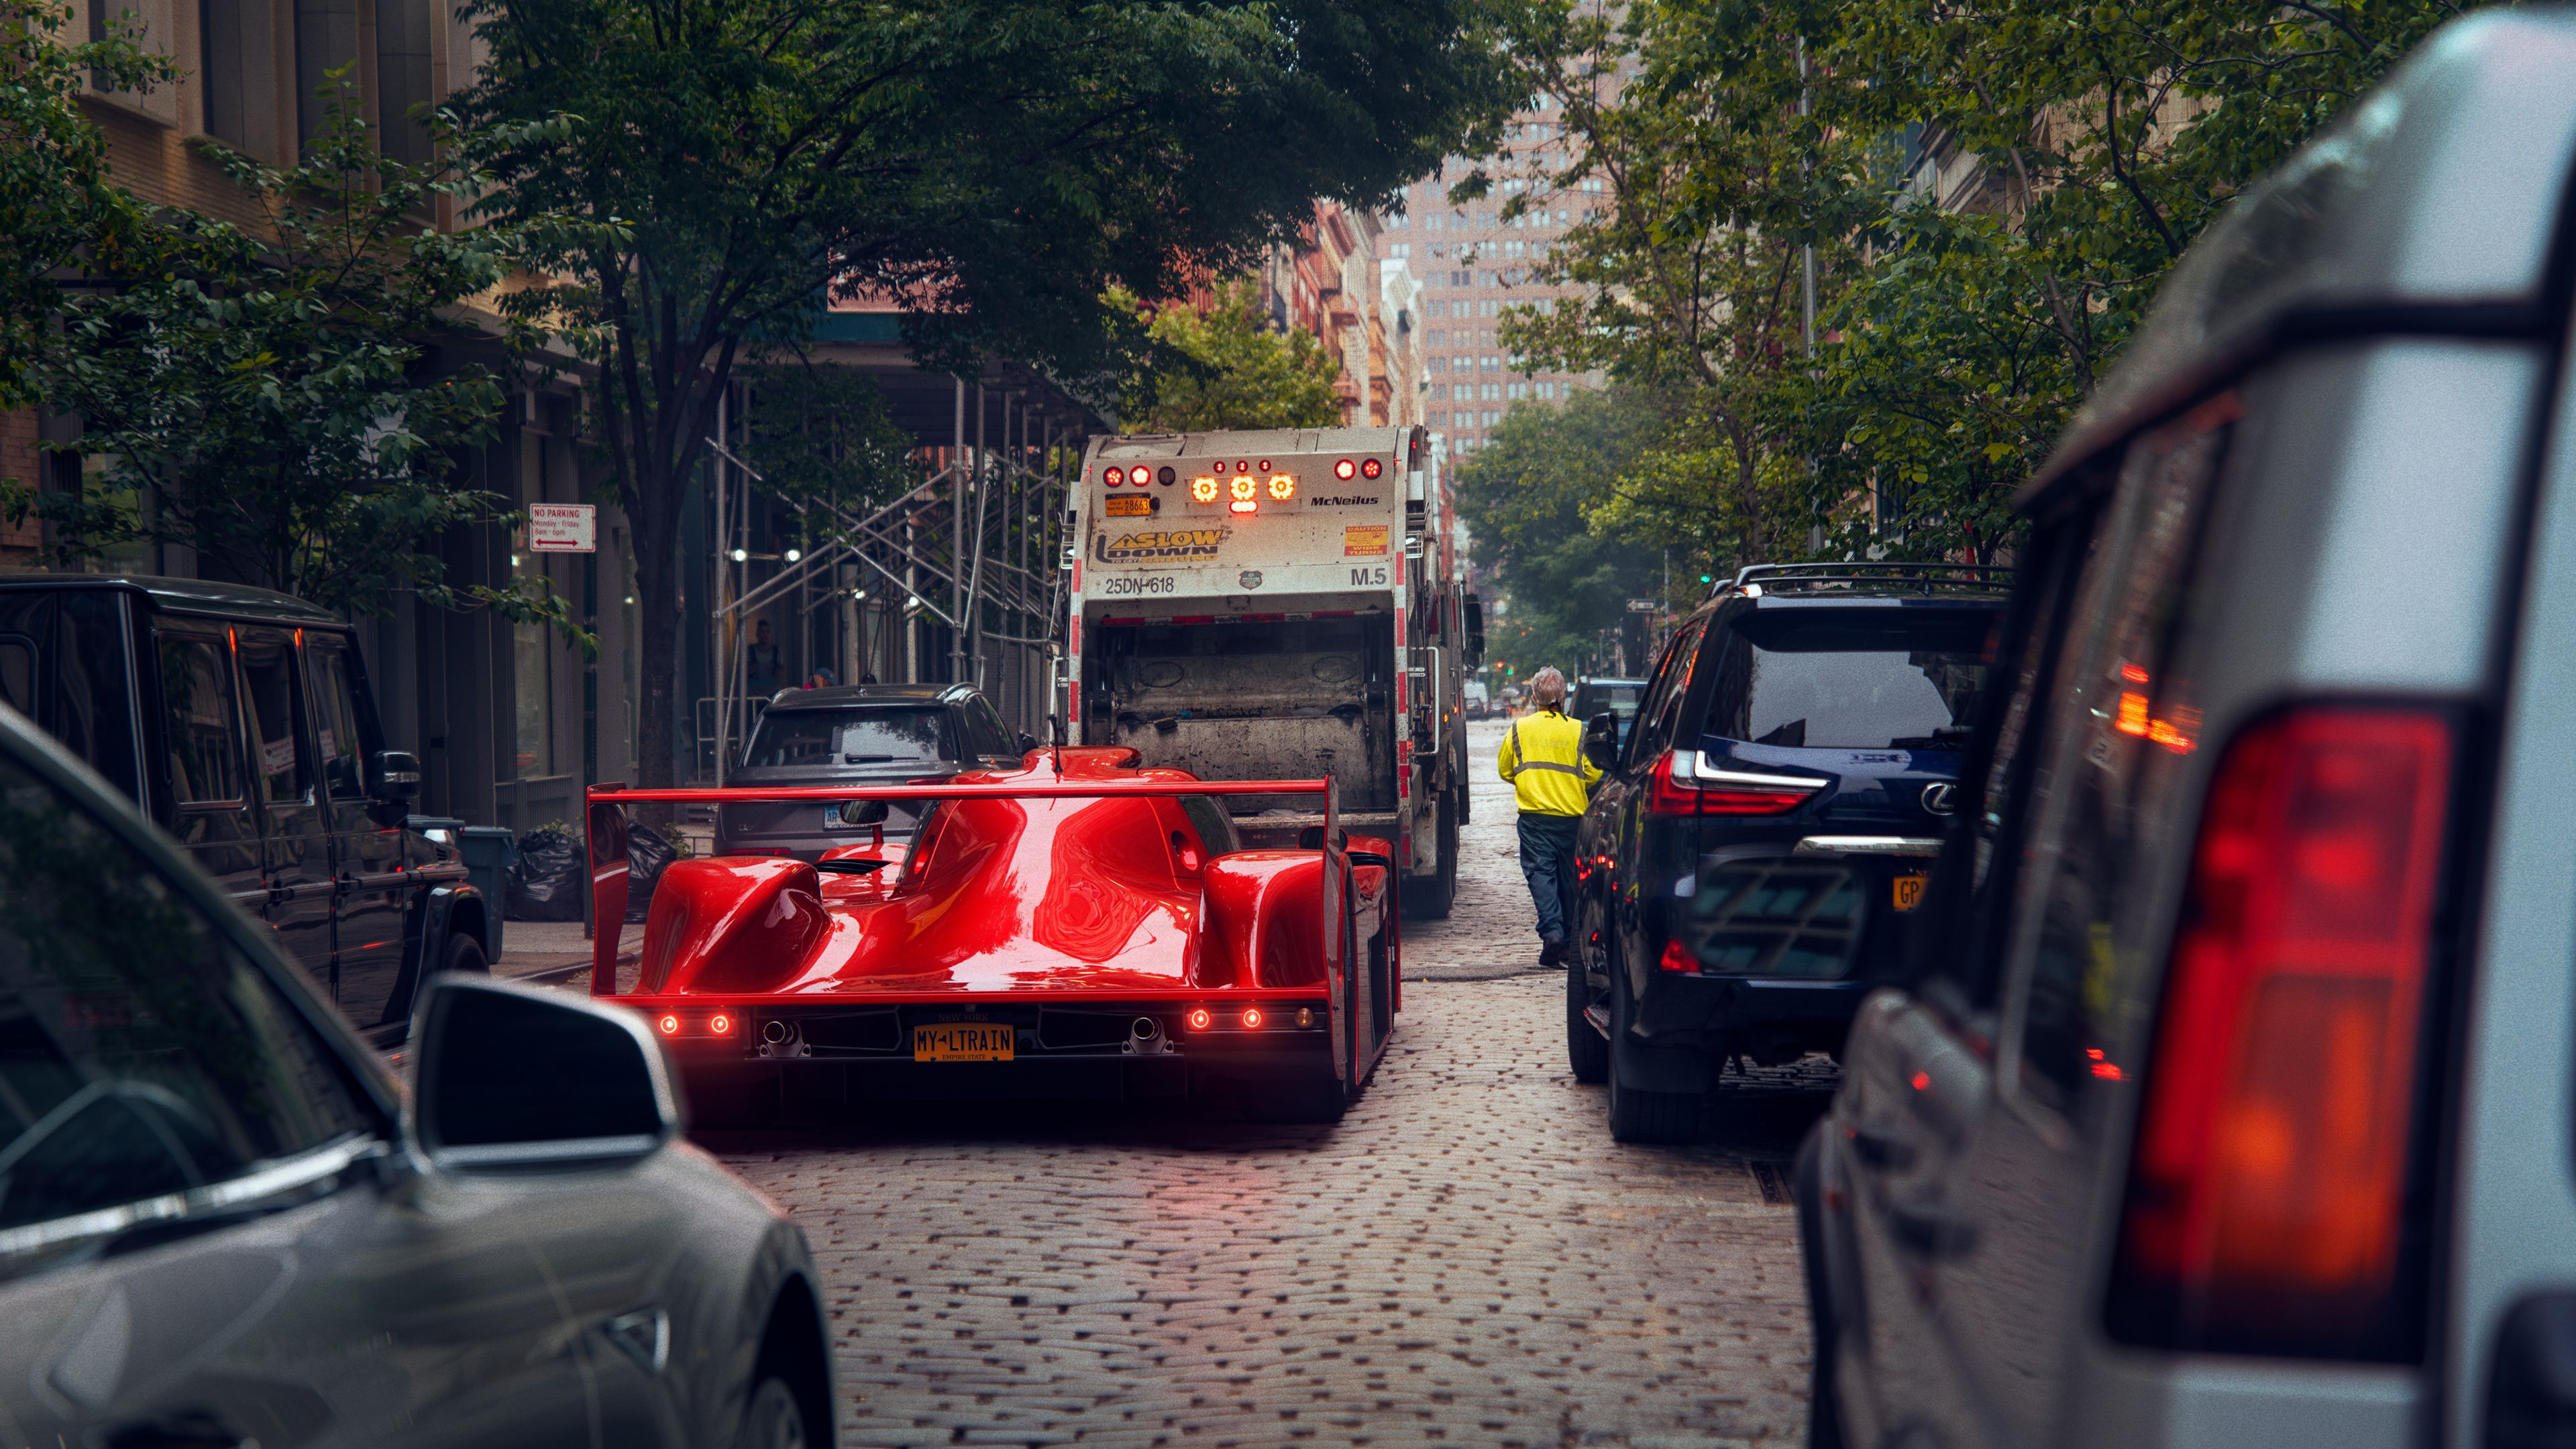 Sports Car On Public Road Hd Wallpapers Cars Wallpapers Behance Wallpapers 4k Wallpapers Car Wallpaper Public Road Behance Wallpaper